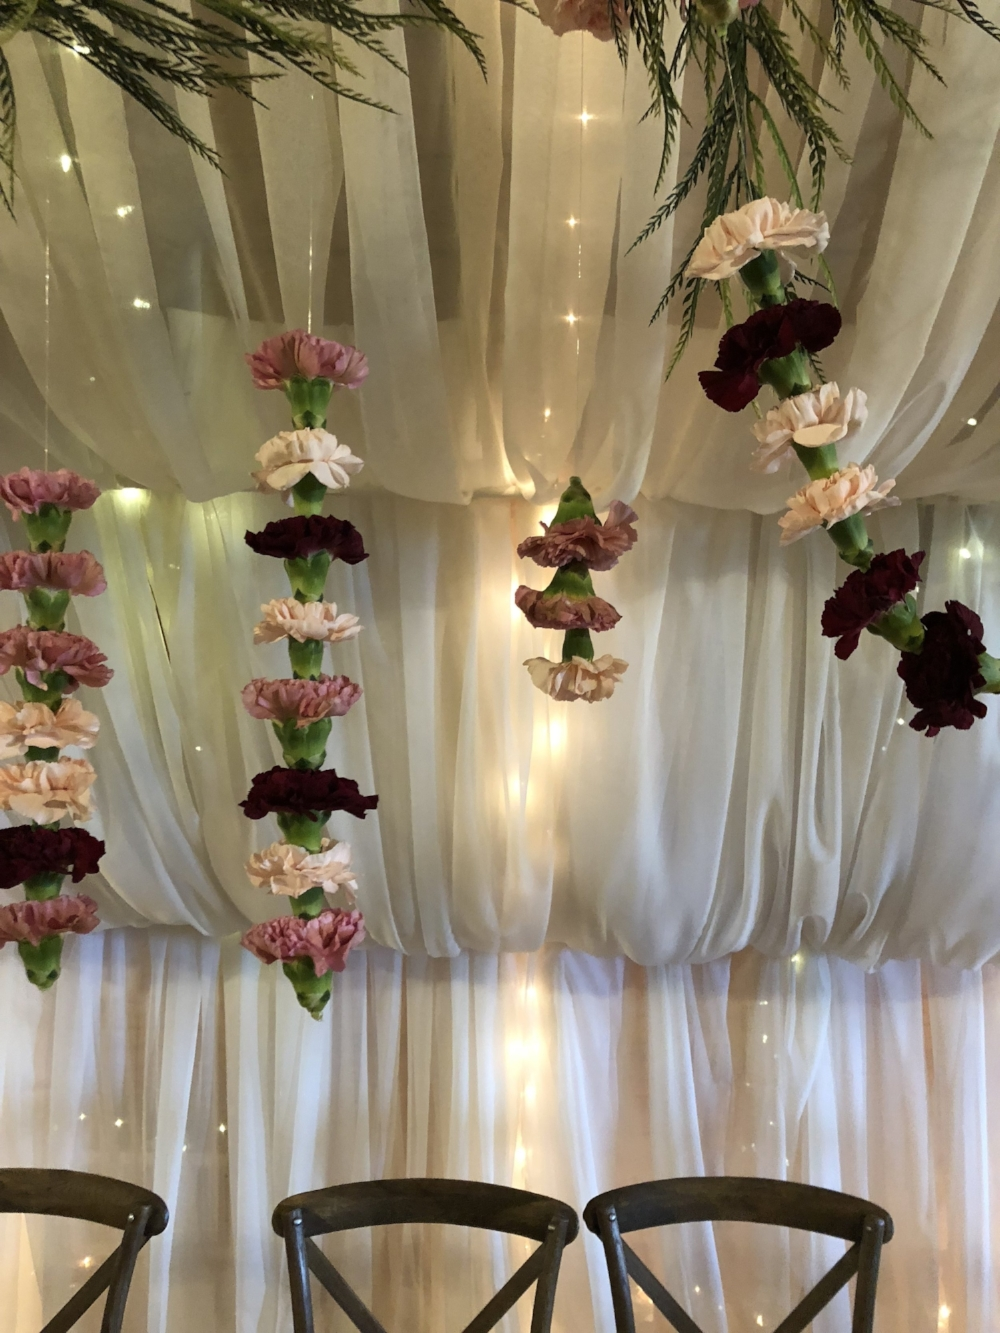 Hanging Carnation STrings Wedding Ideas - Wedding Florists in Winnipeg